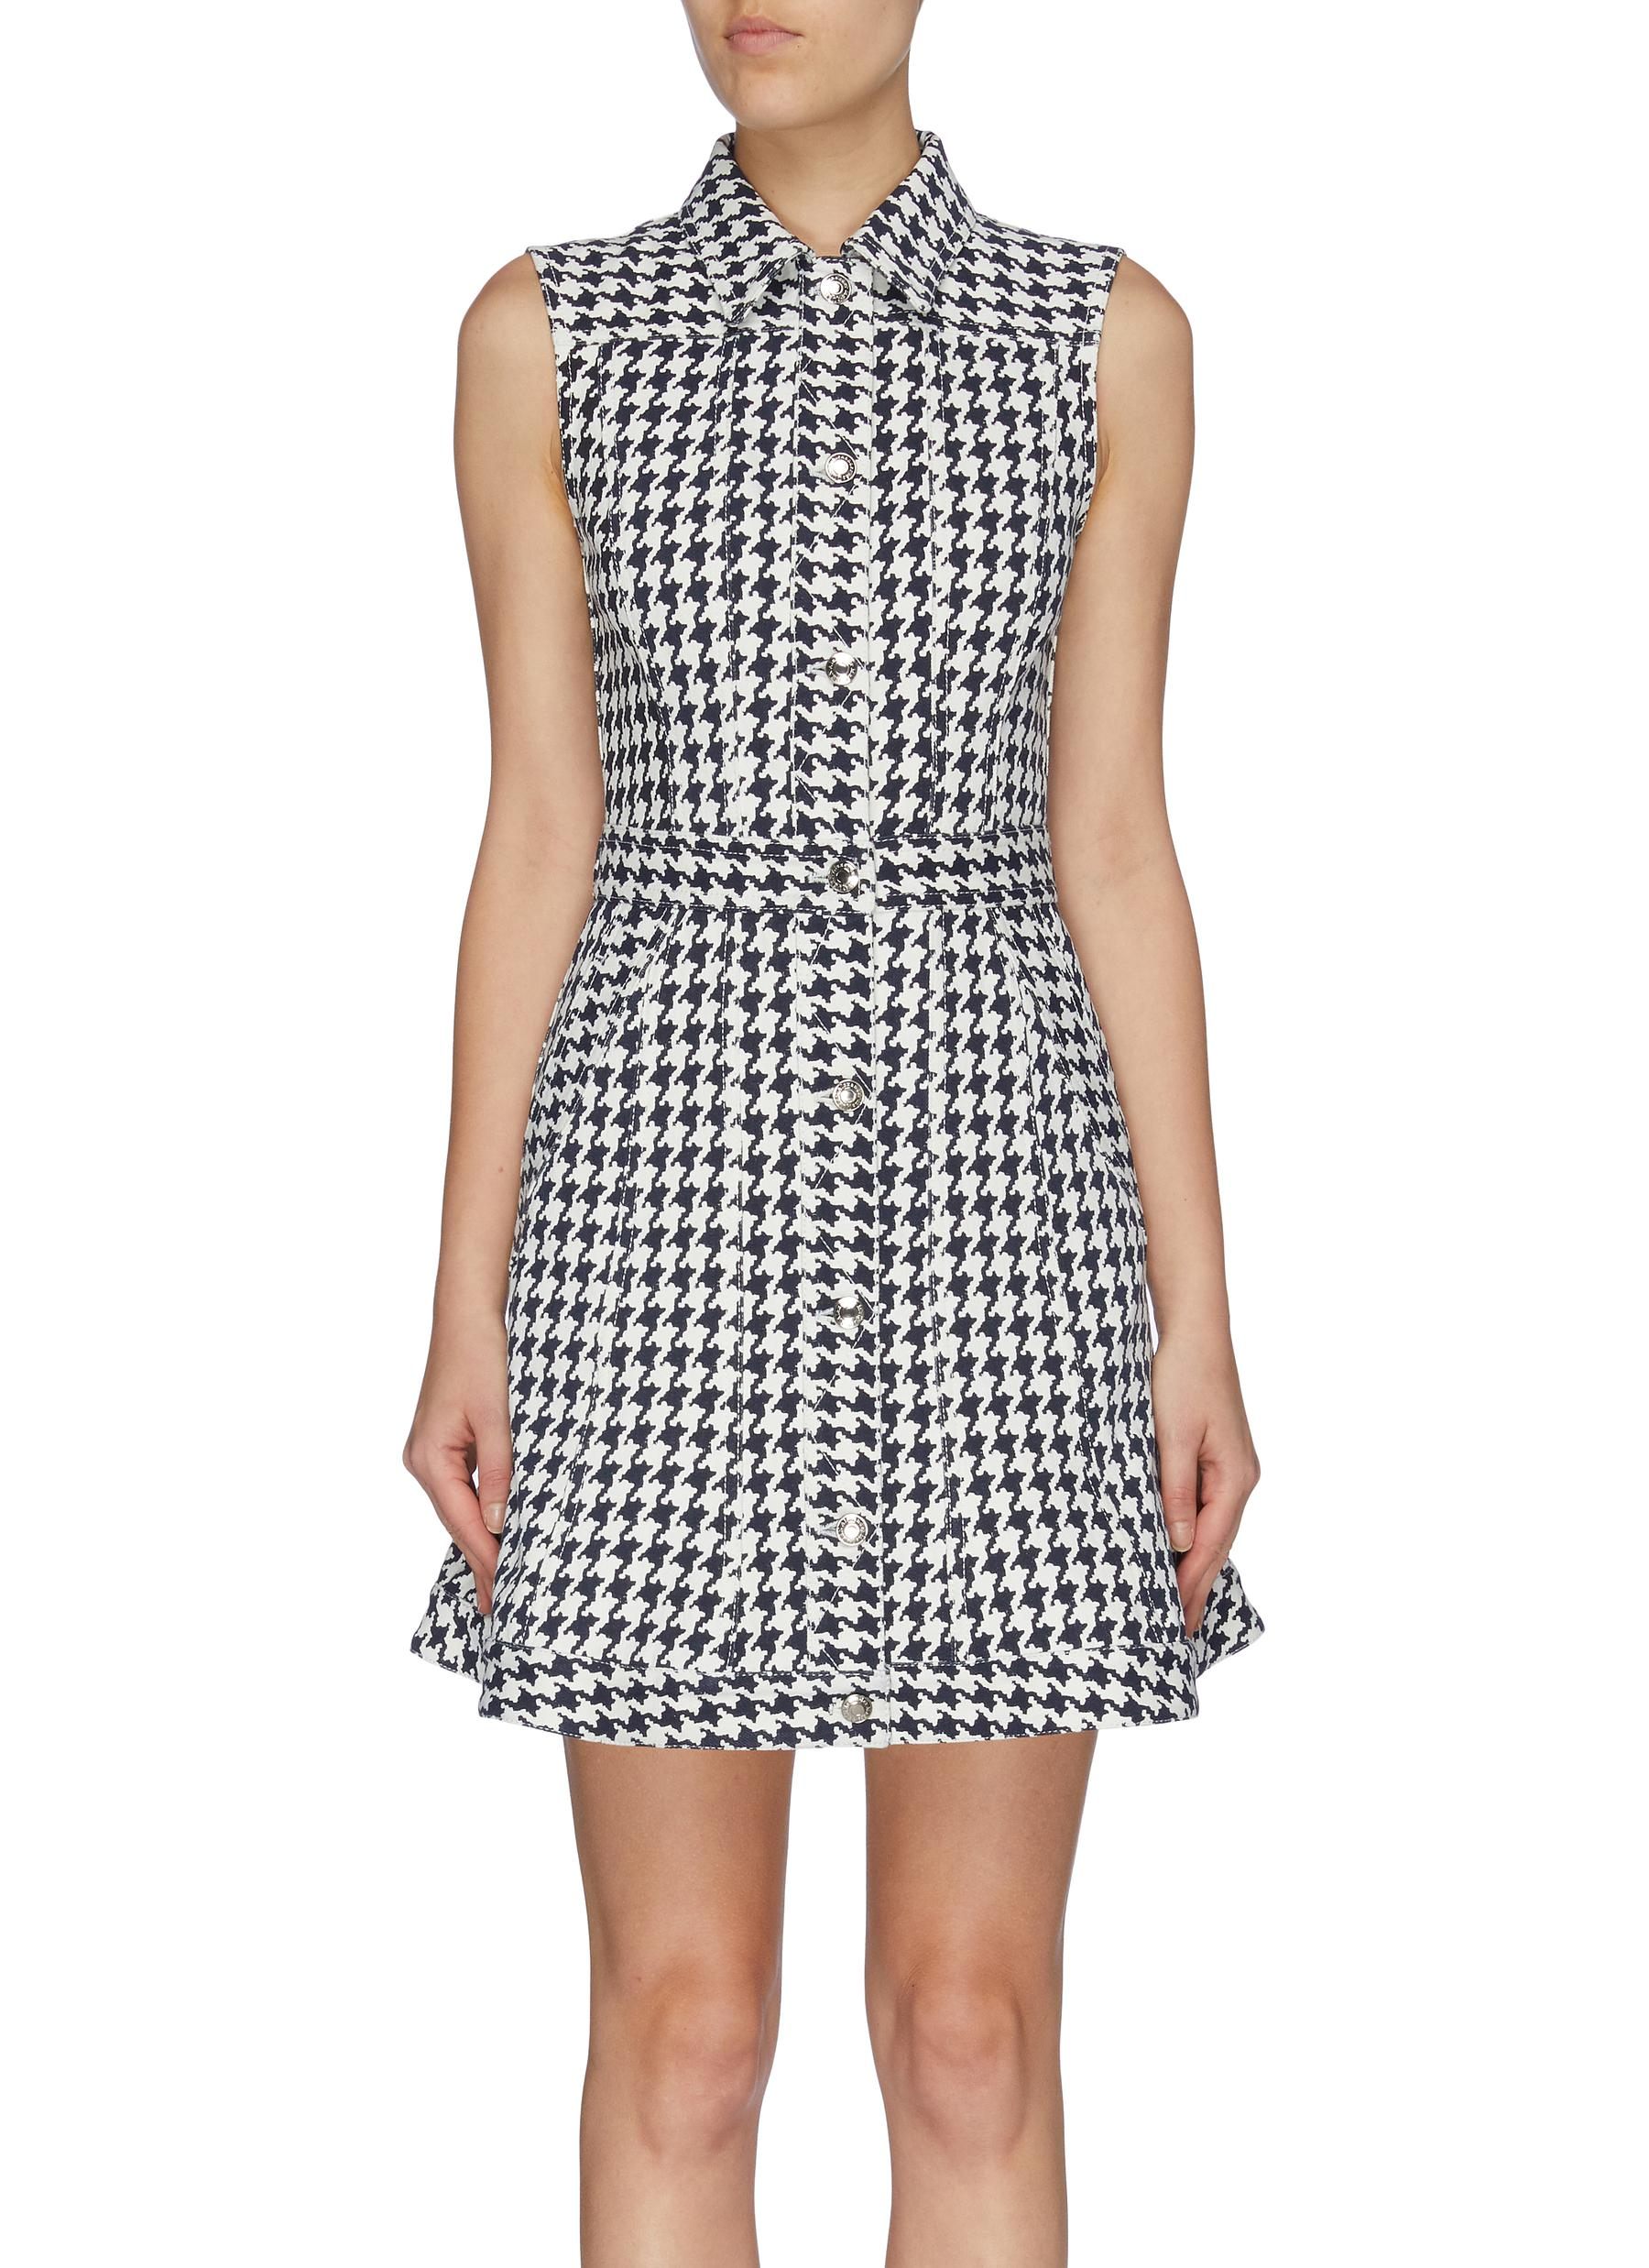 Flared houndstooth jacquard sleeveless denim dress by Alexander Mcqueen